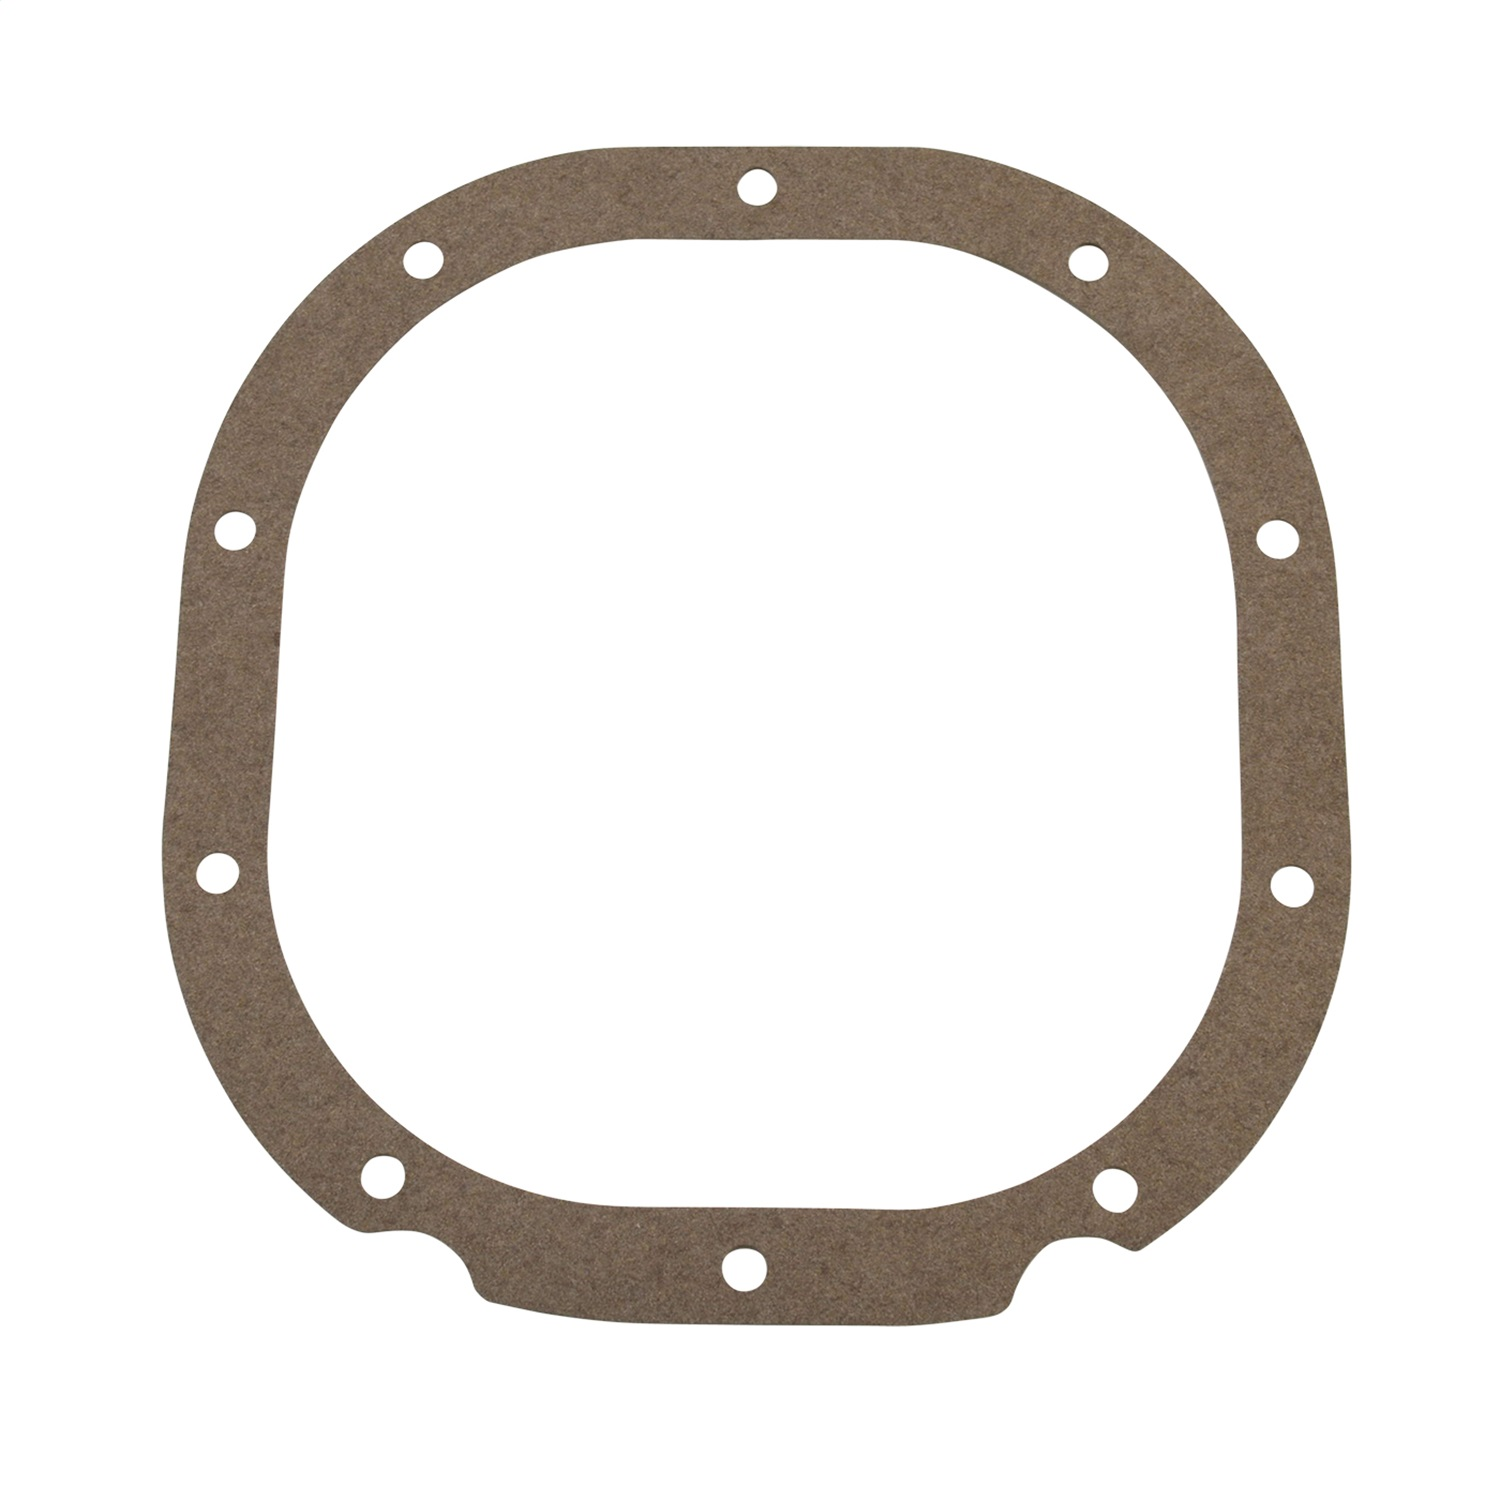 Yukon Gear & Axle YCGF8.8 Differential Cover Gasket